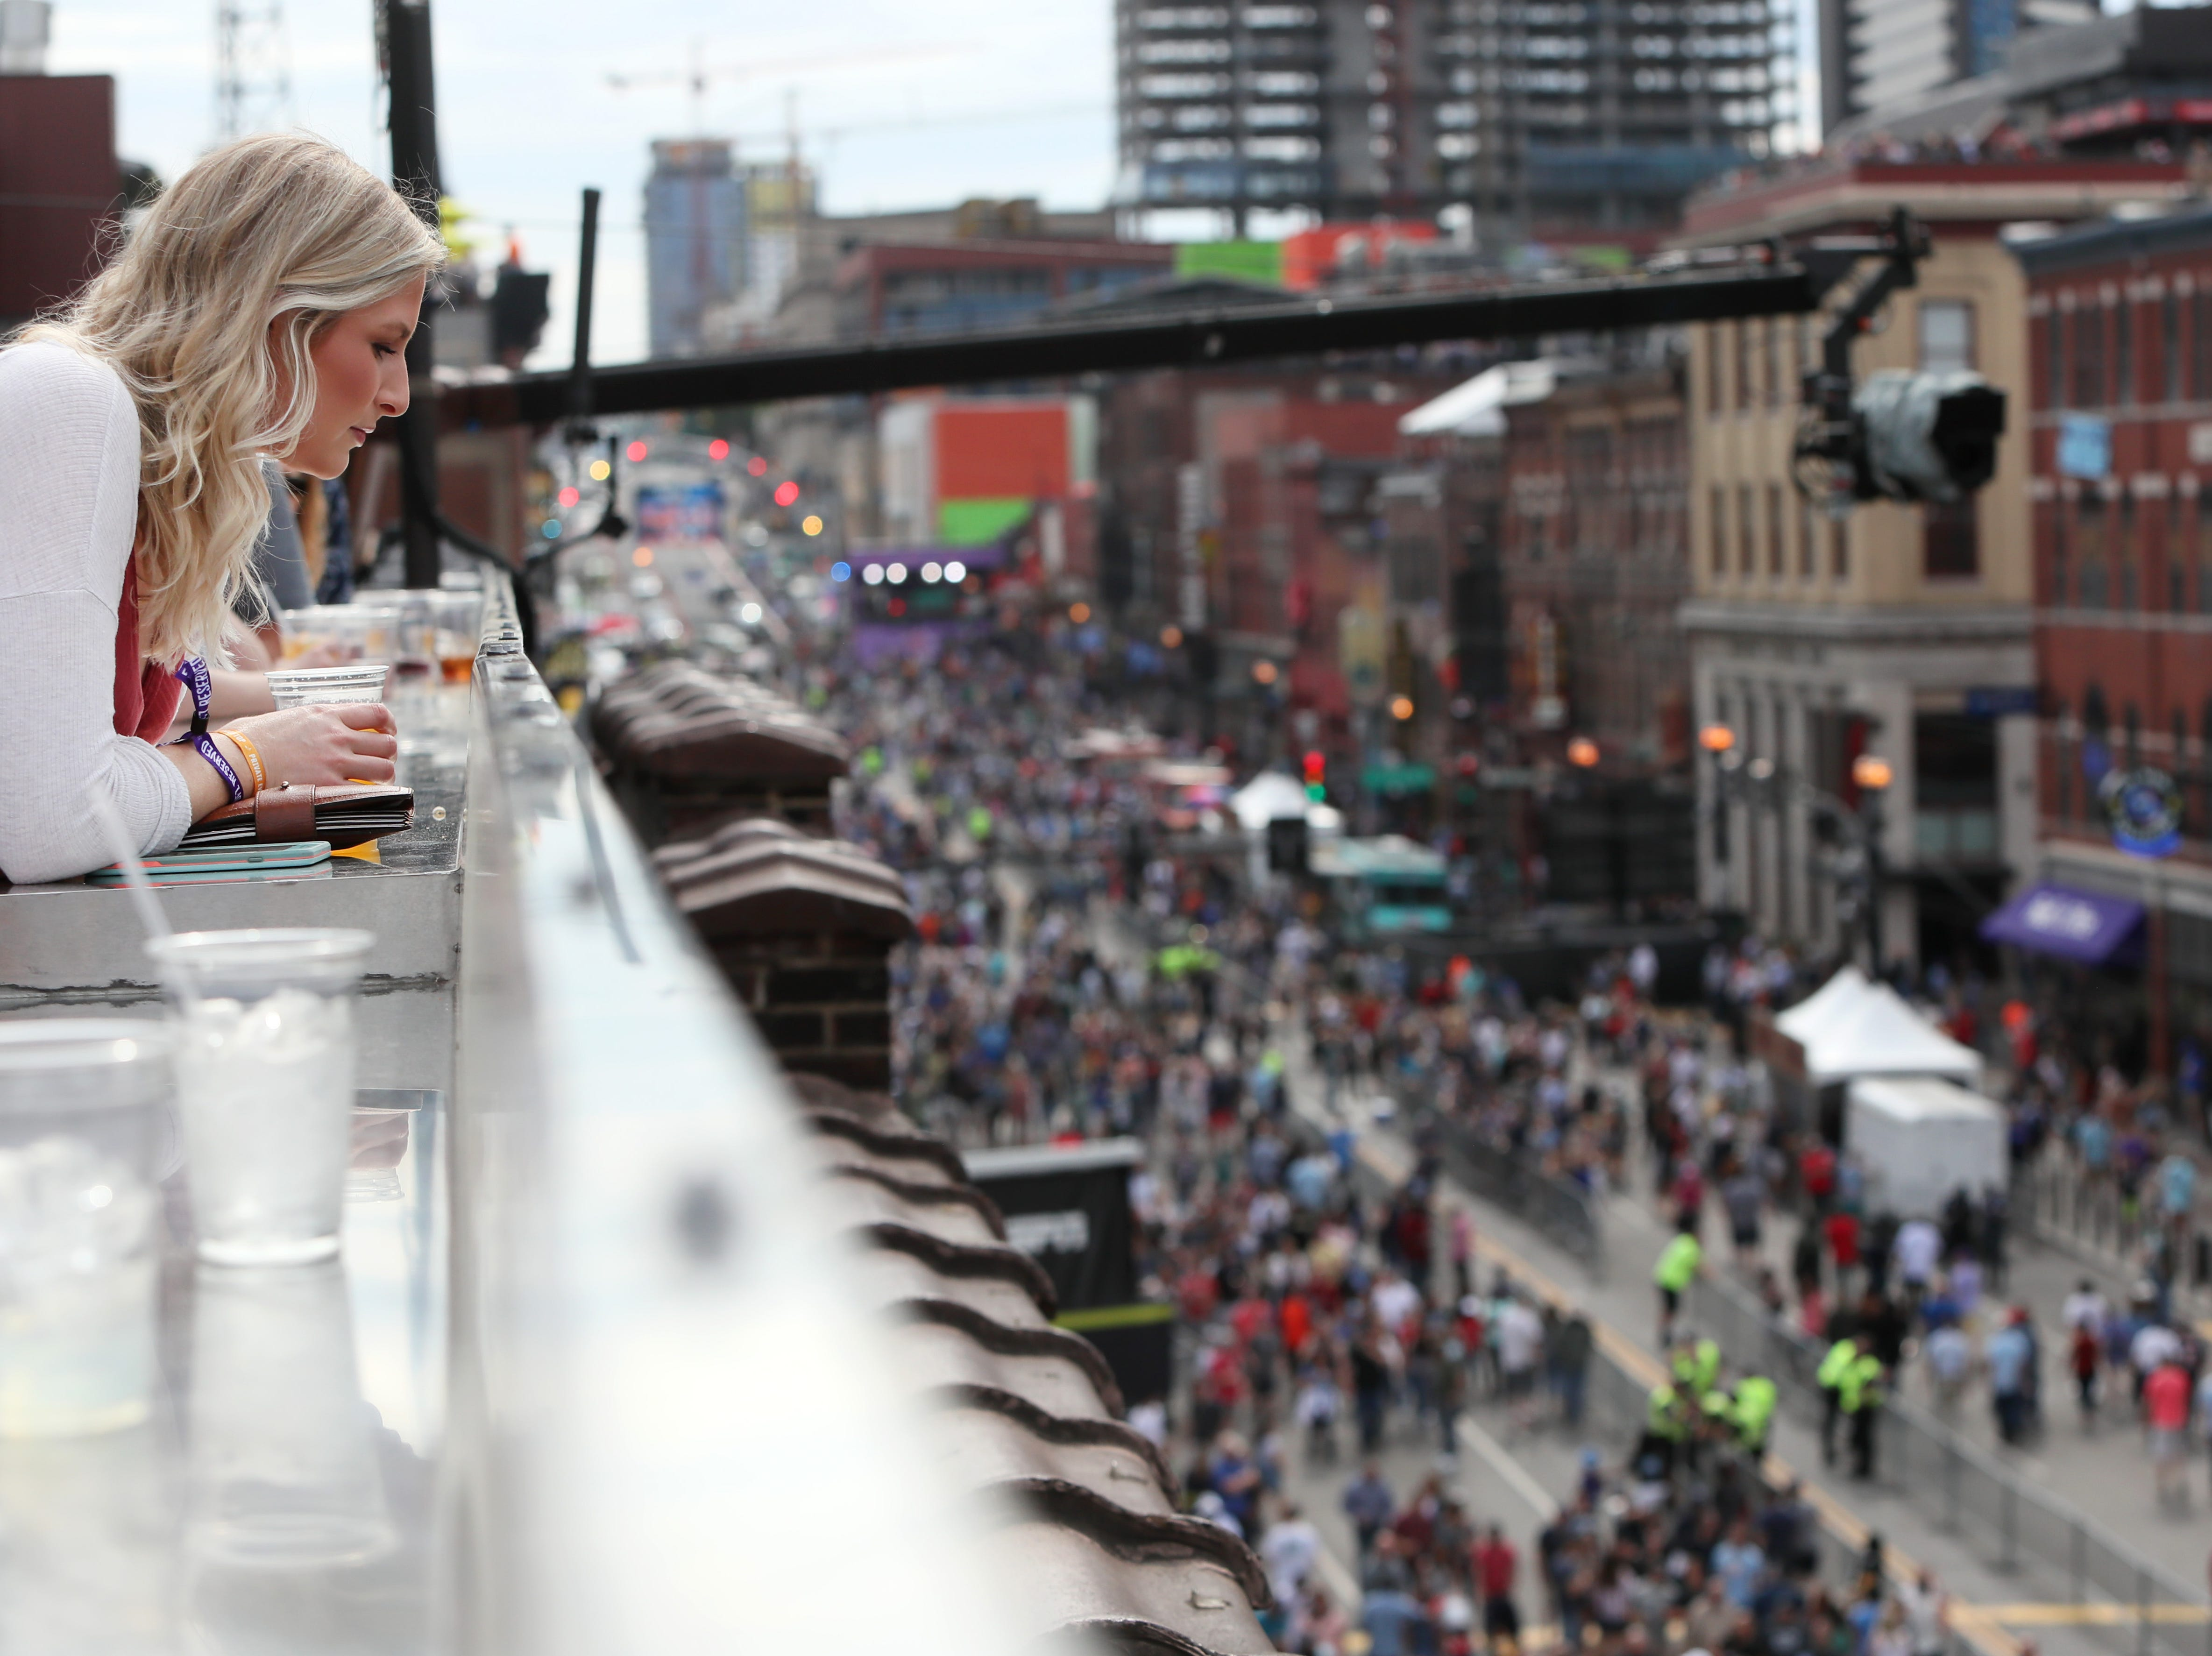 Morgan Musselwhite looks out over the crowd on Lower Broadway from the Rock Bottom Brewery rooftop deck during the NFL draft's third and final day in downtown Nashville on Saturday, April 27, 2019.